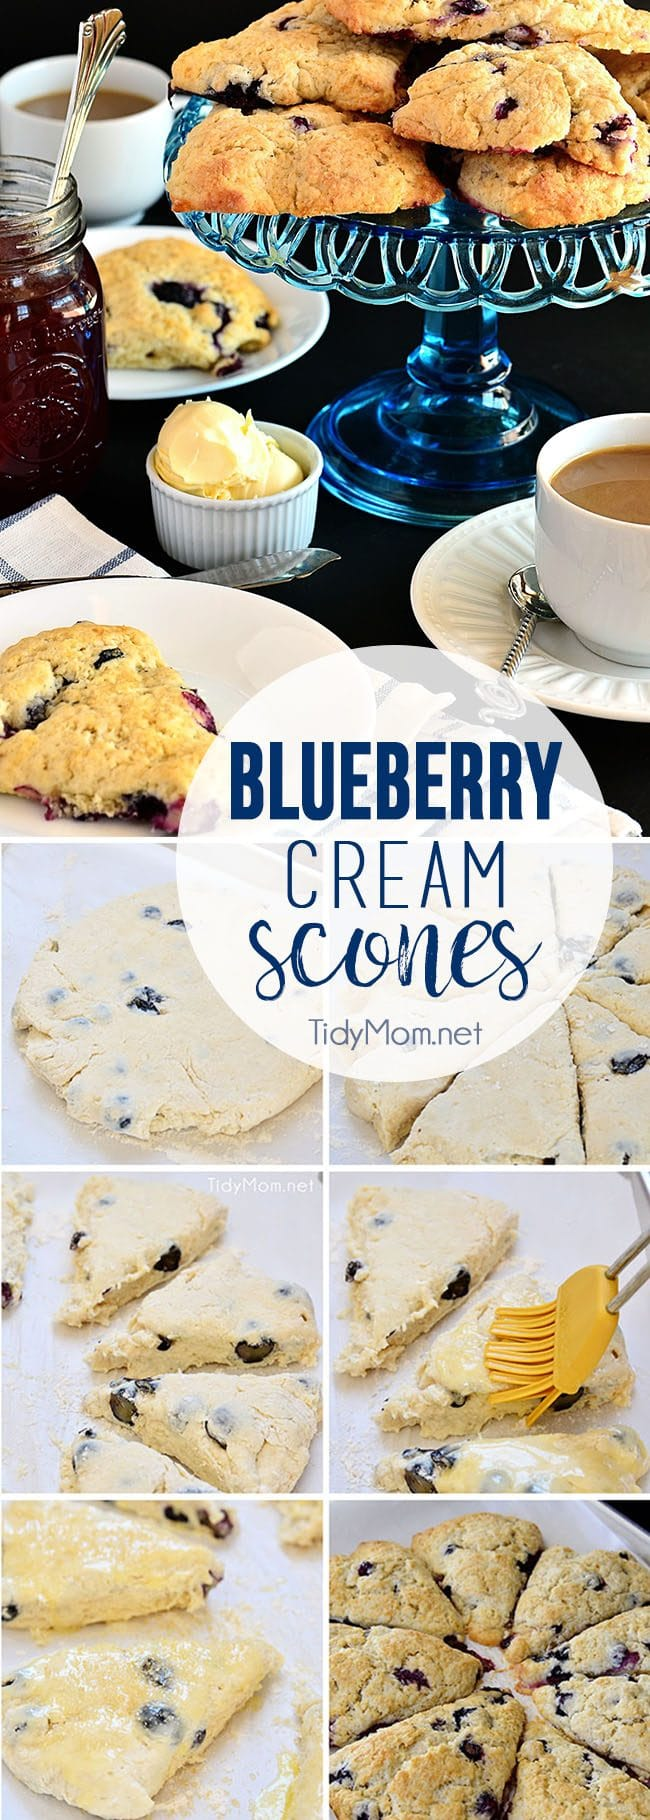 Blueberry Cream Scones really come together so quickly, you can have warm batch ready to devour while you clean up the kitchen and put on a pot of coffee! This recipe make 8 scones, but make a double batch and put half of them in the freezer to have on hand. Simply pop a frozen scone in the oven, to warm up, or if you're in a hurry, just wrap in a paper towel and microwave for about 20 seconds! Homemade Blueberry Cream Scones recipe at TidyMom.net